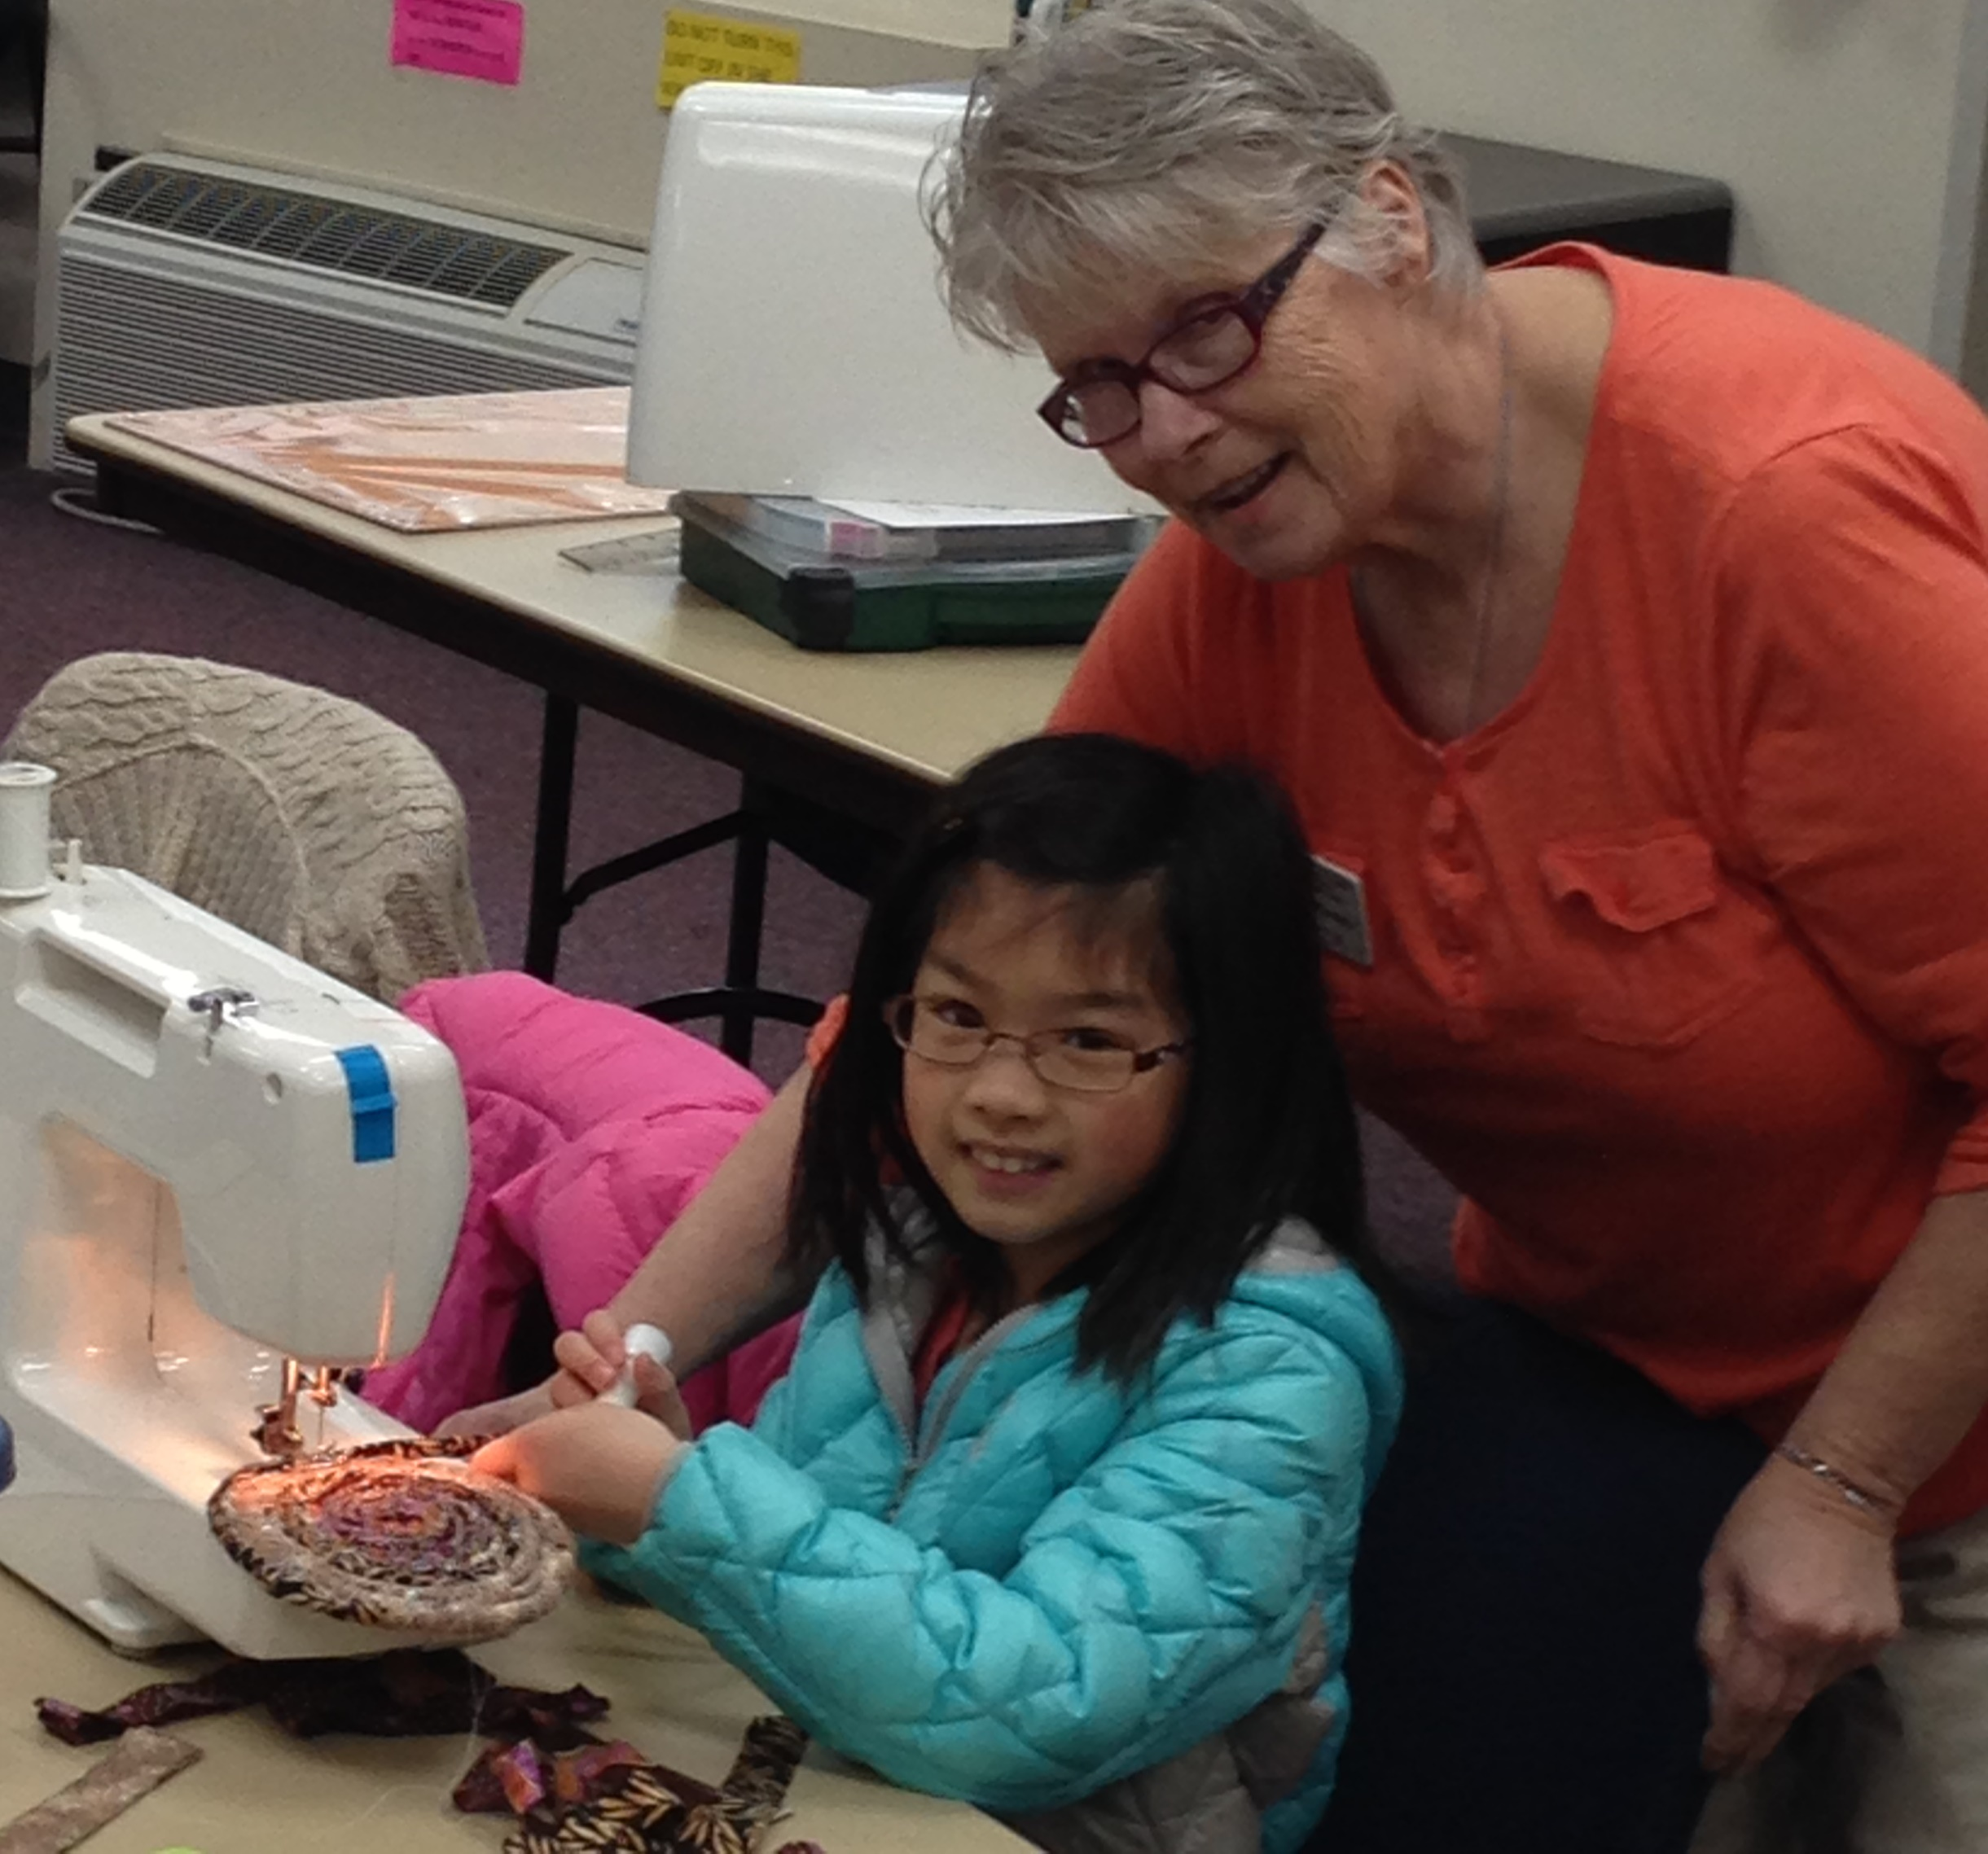 girl learning to sew, with adult mentor looking over her shoulder.